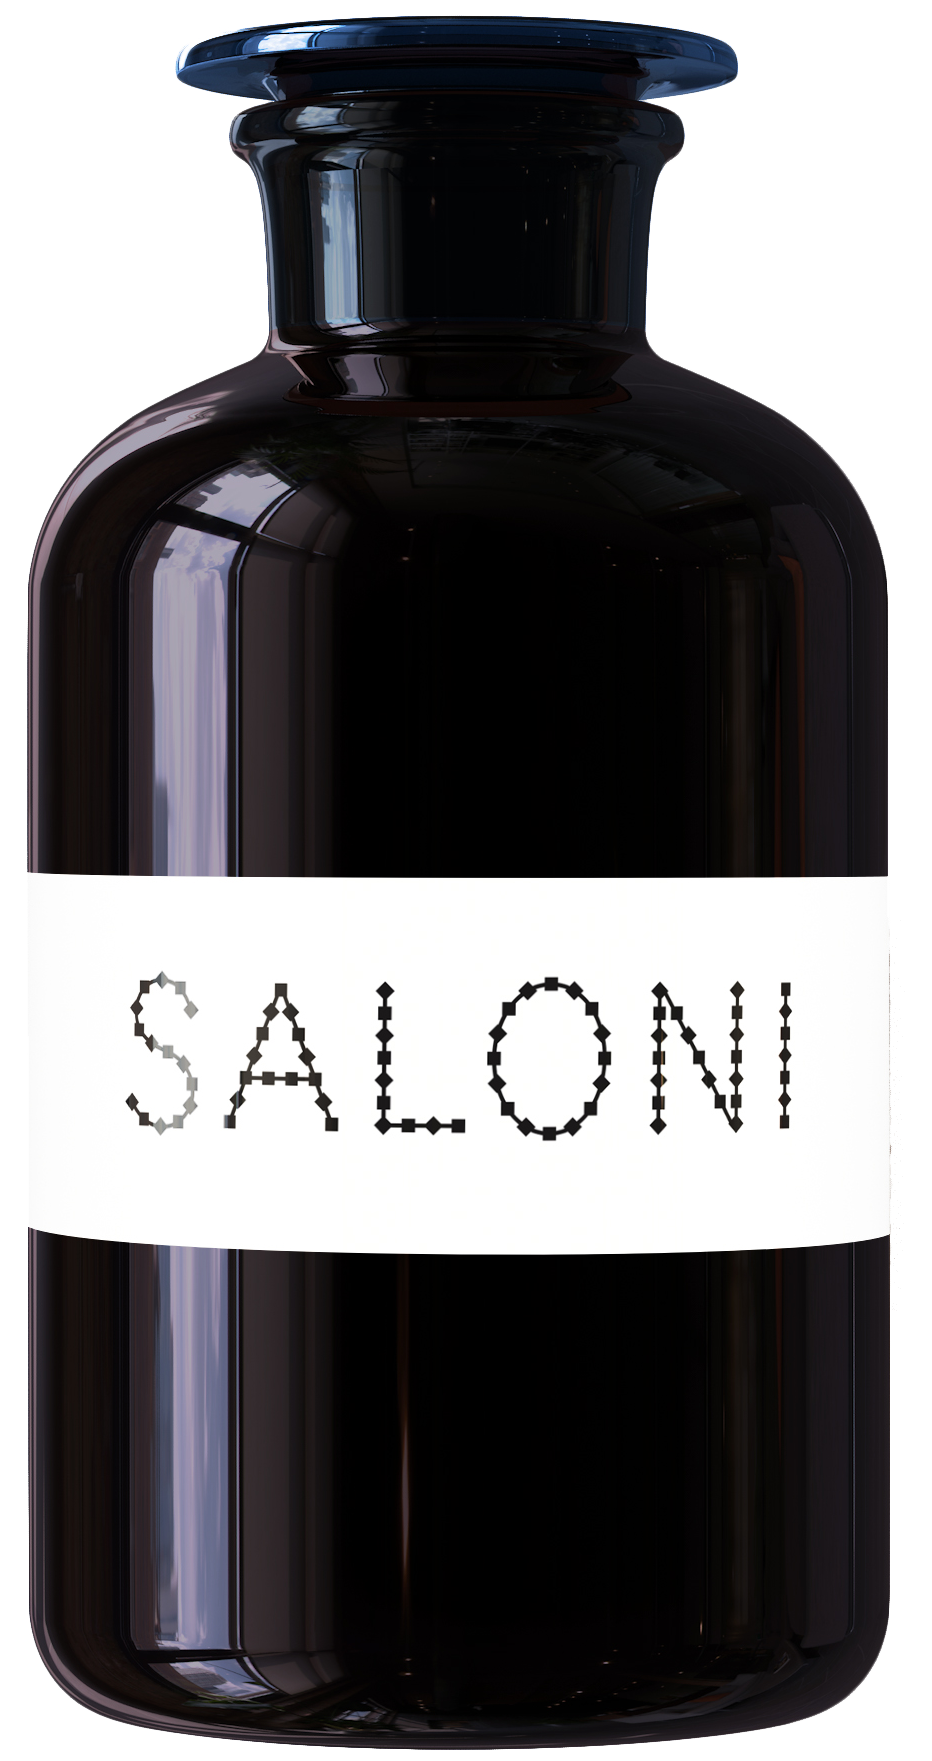 A bottle with a white label and Saloni written in black